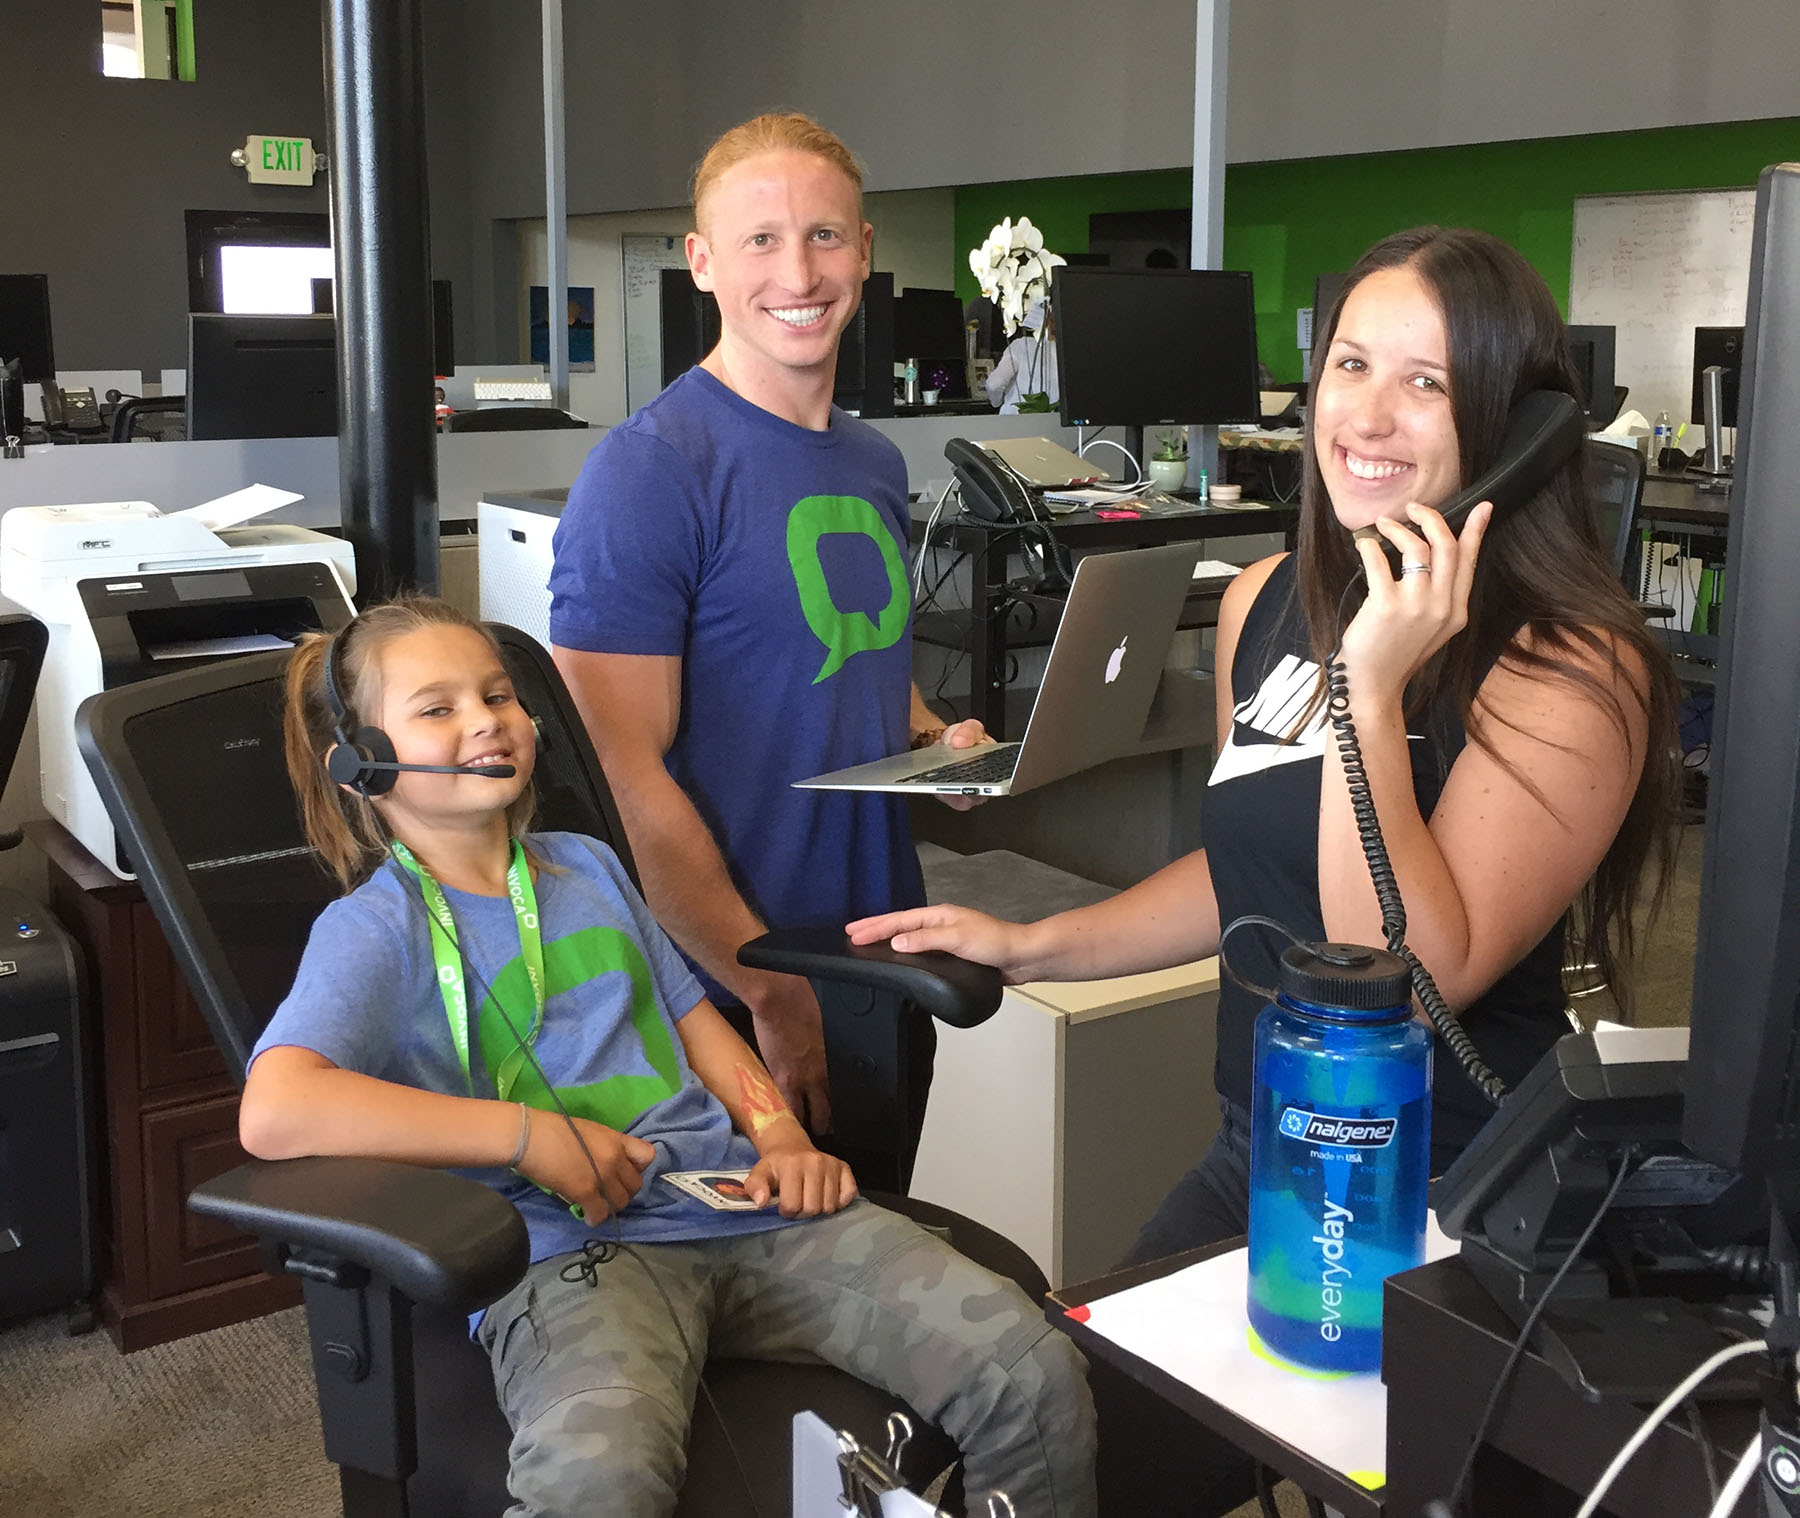 Invoca's Bring Your Kids to Work Day 2018